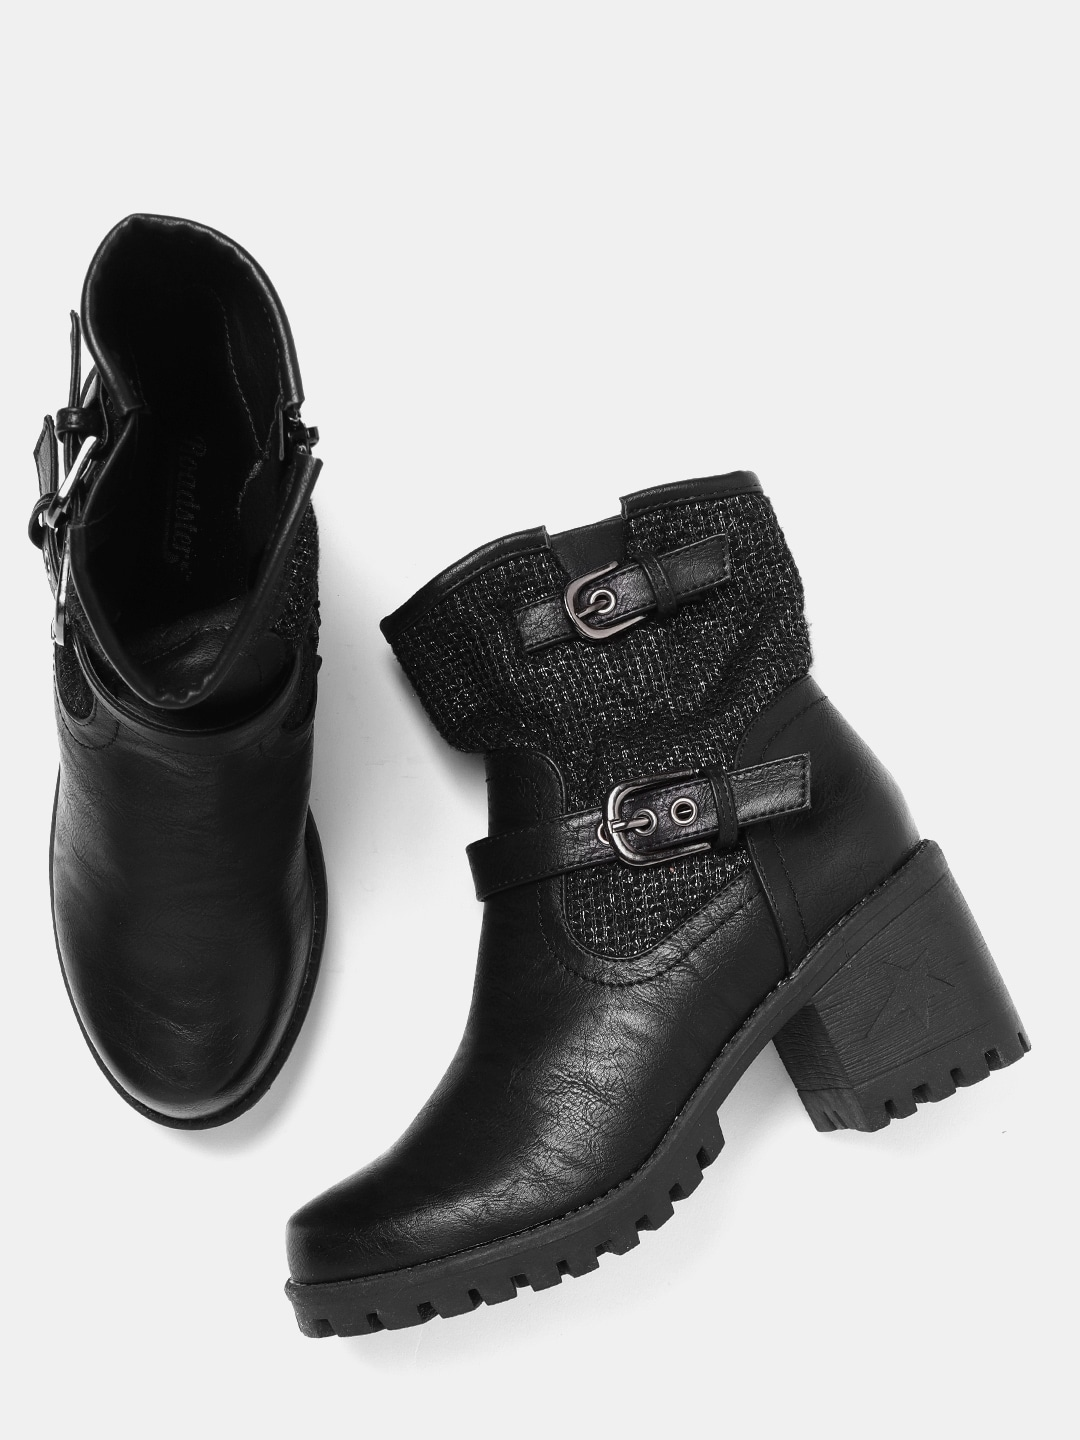 eabb4152b8b1 Womens Boots - Buy Boots for Women Online in India